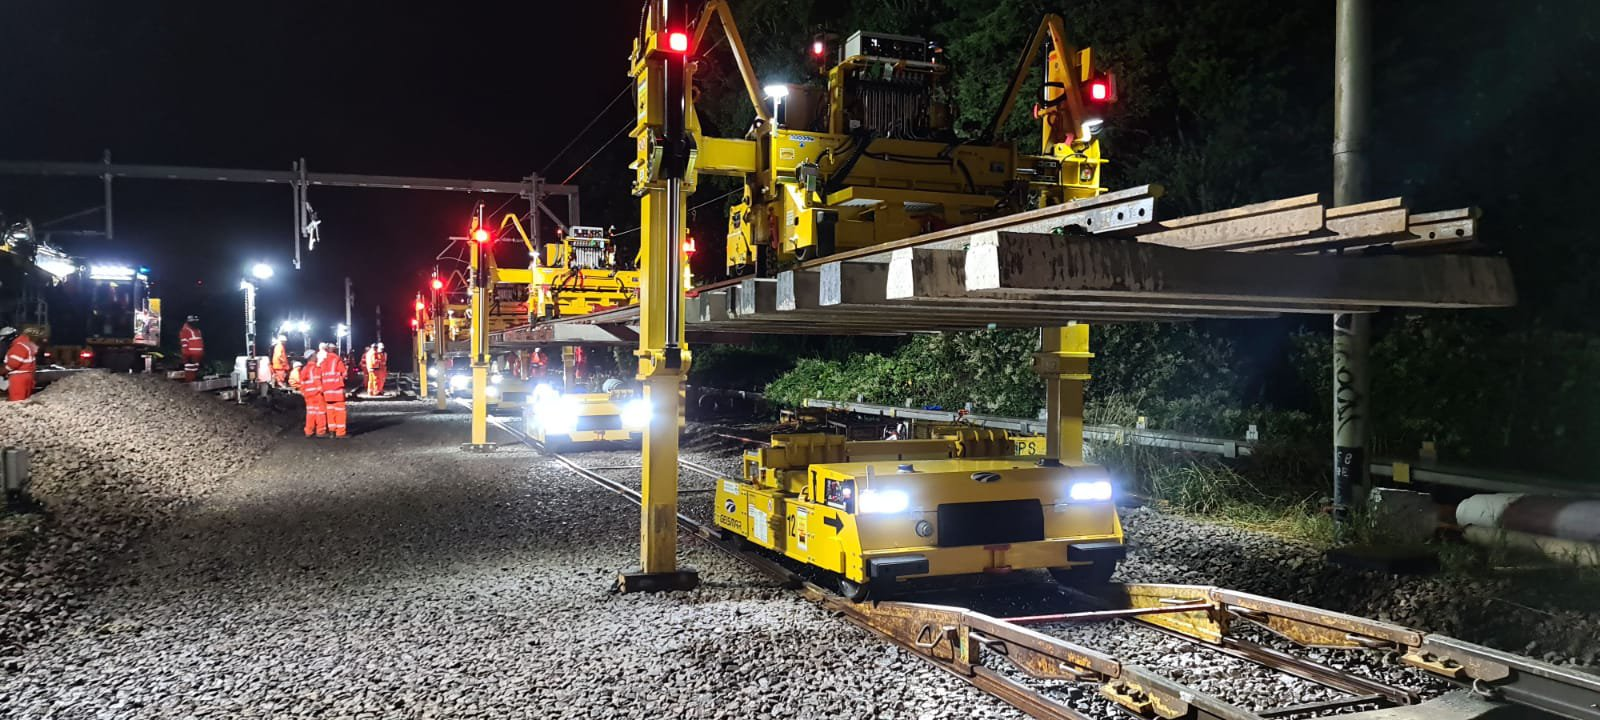 A close up shot of nighttime work on rail tracks at the Barking Riverside project.